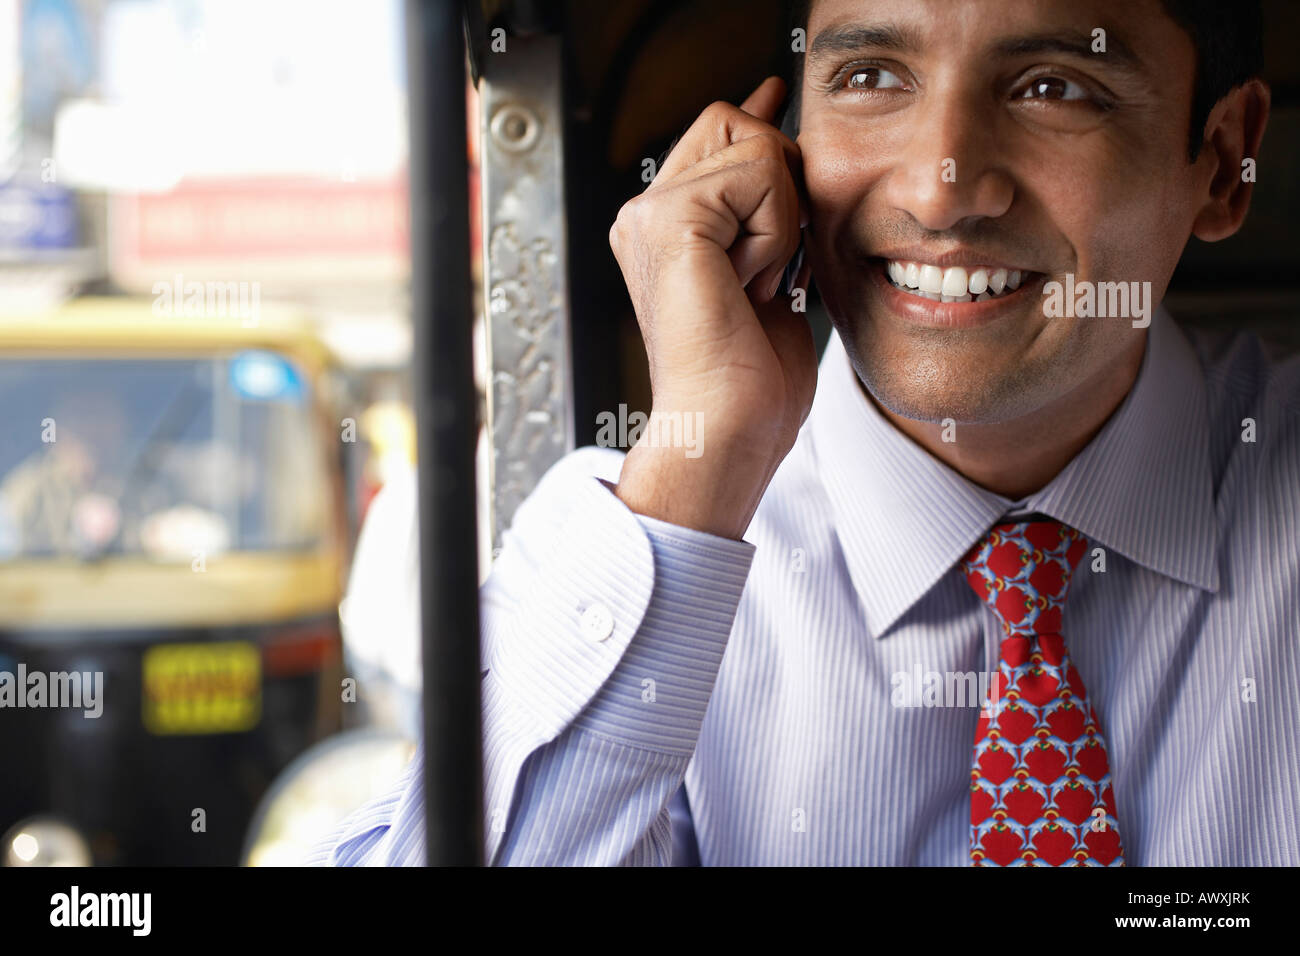 Business man using cell phone, smiling Banque D'Images